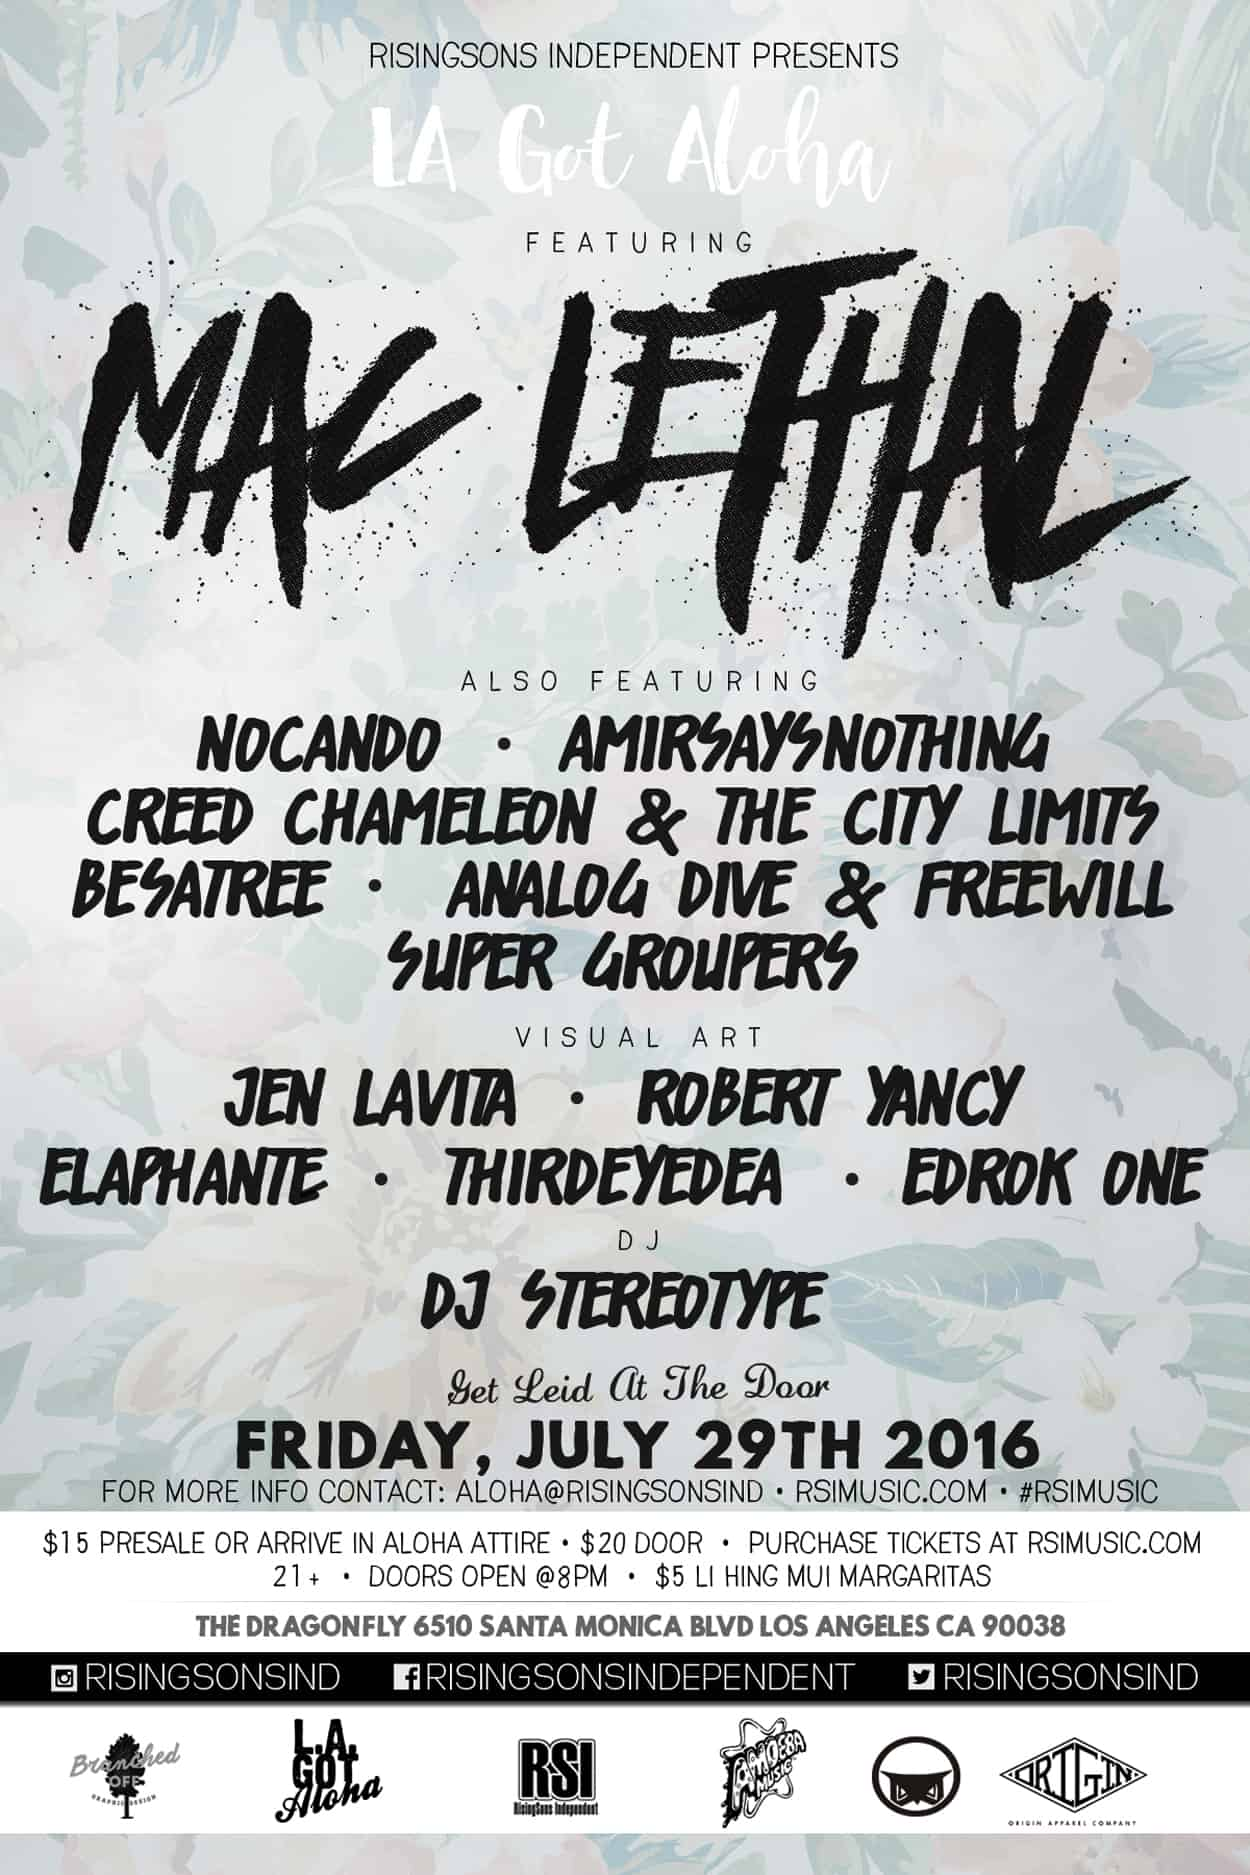 rsi - mac lethal - flyer design